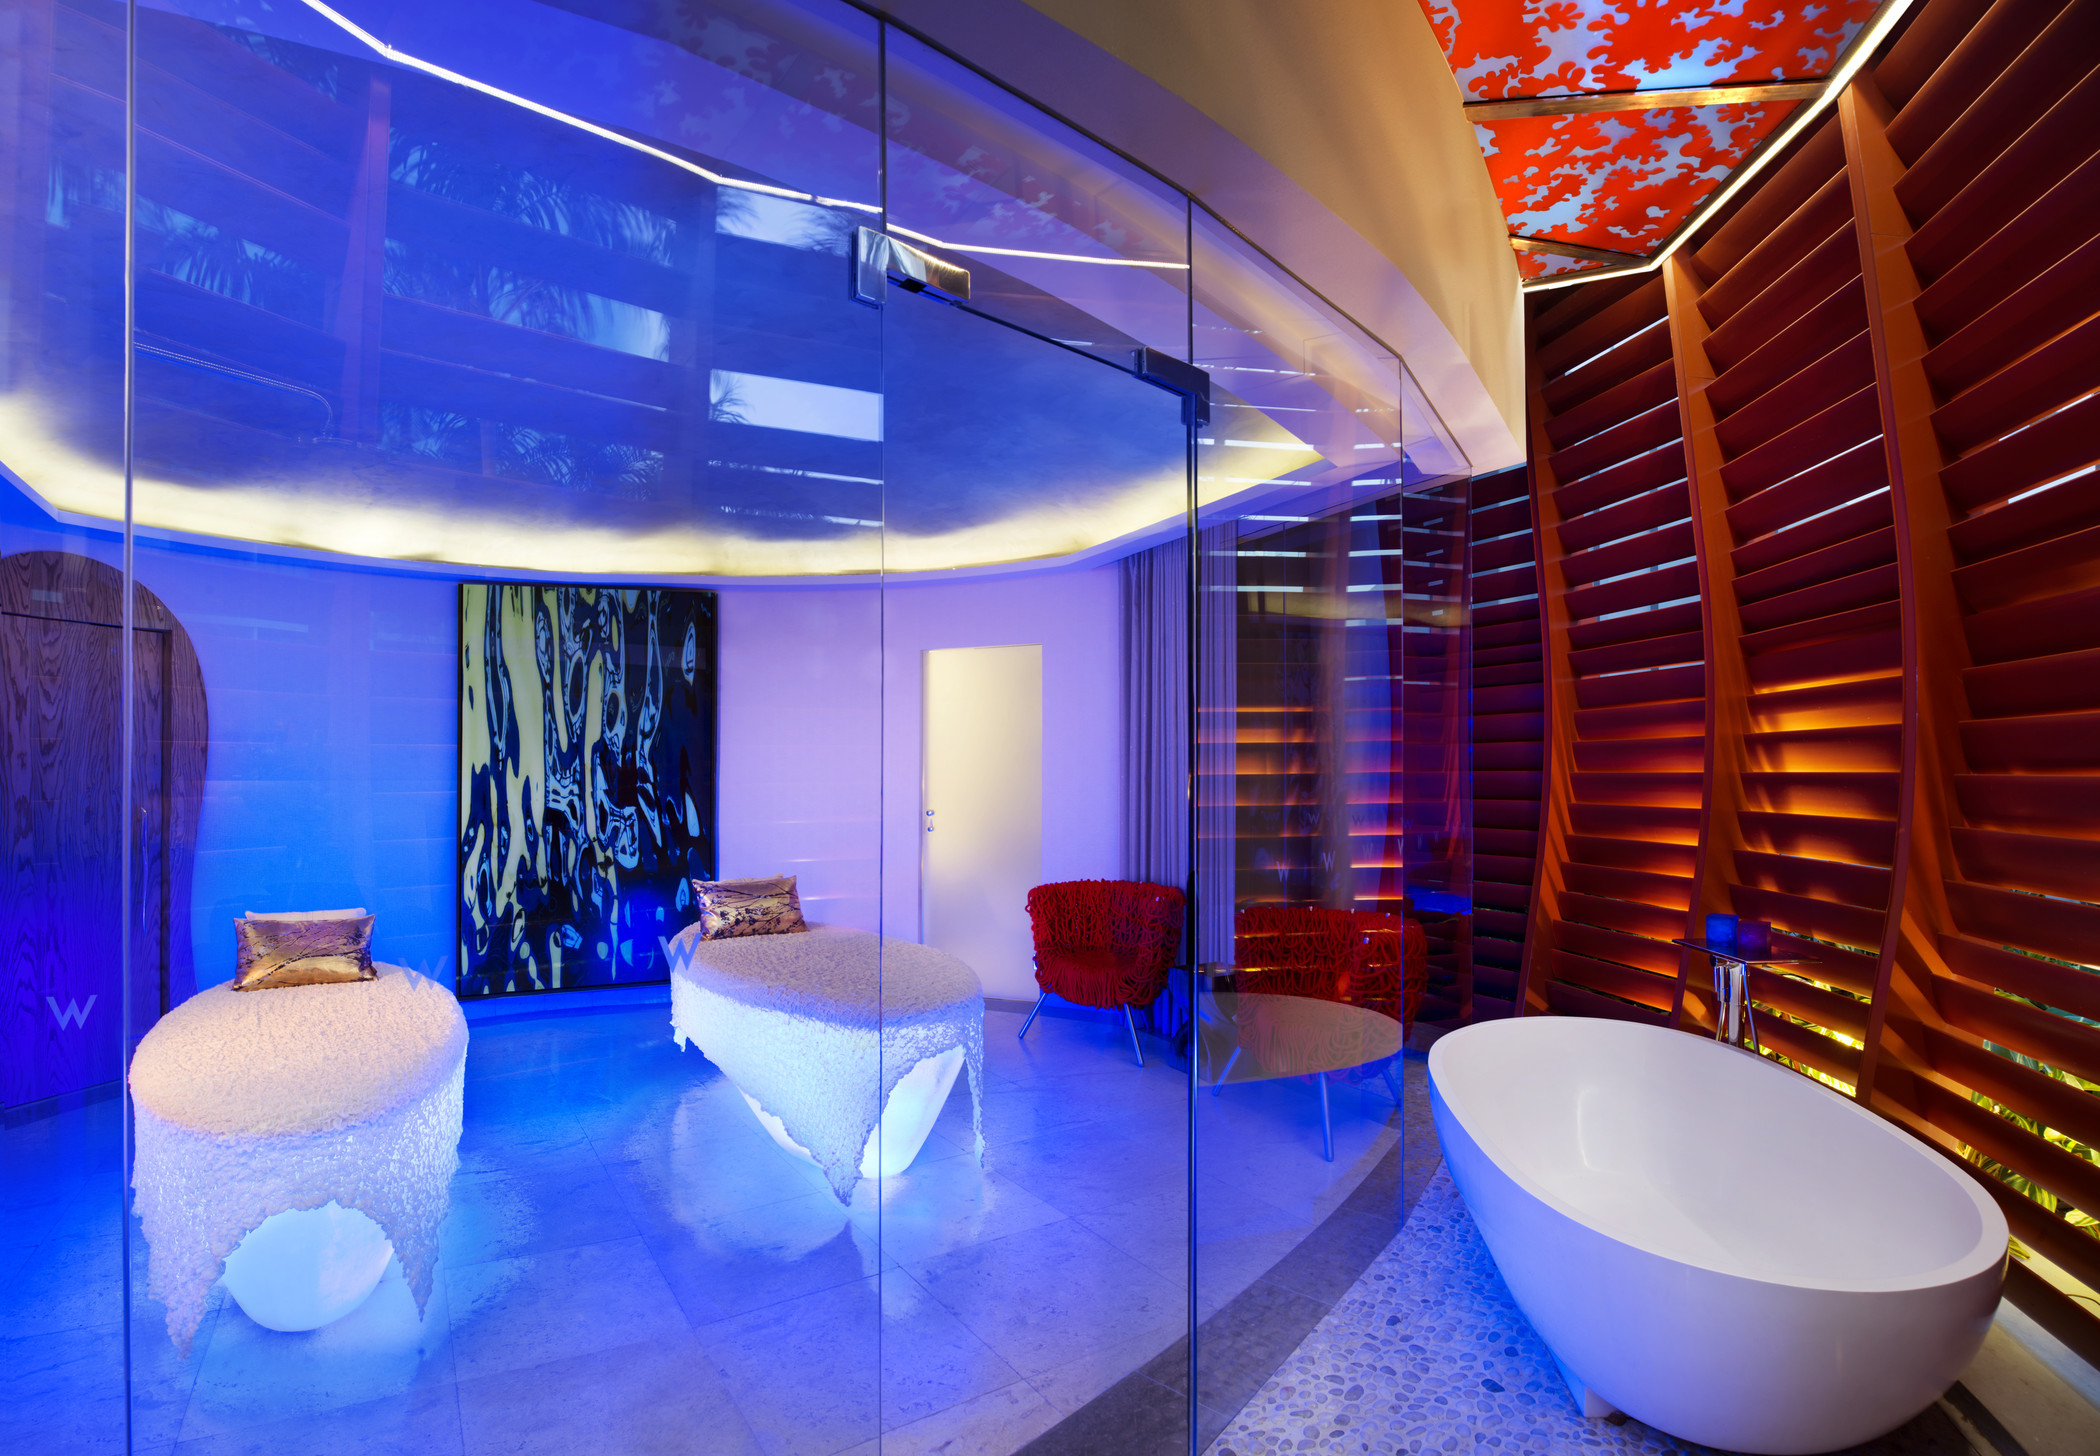 AWAY Spa at W Singapore